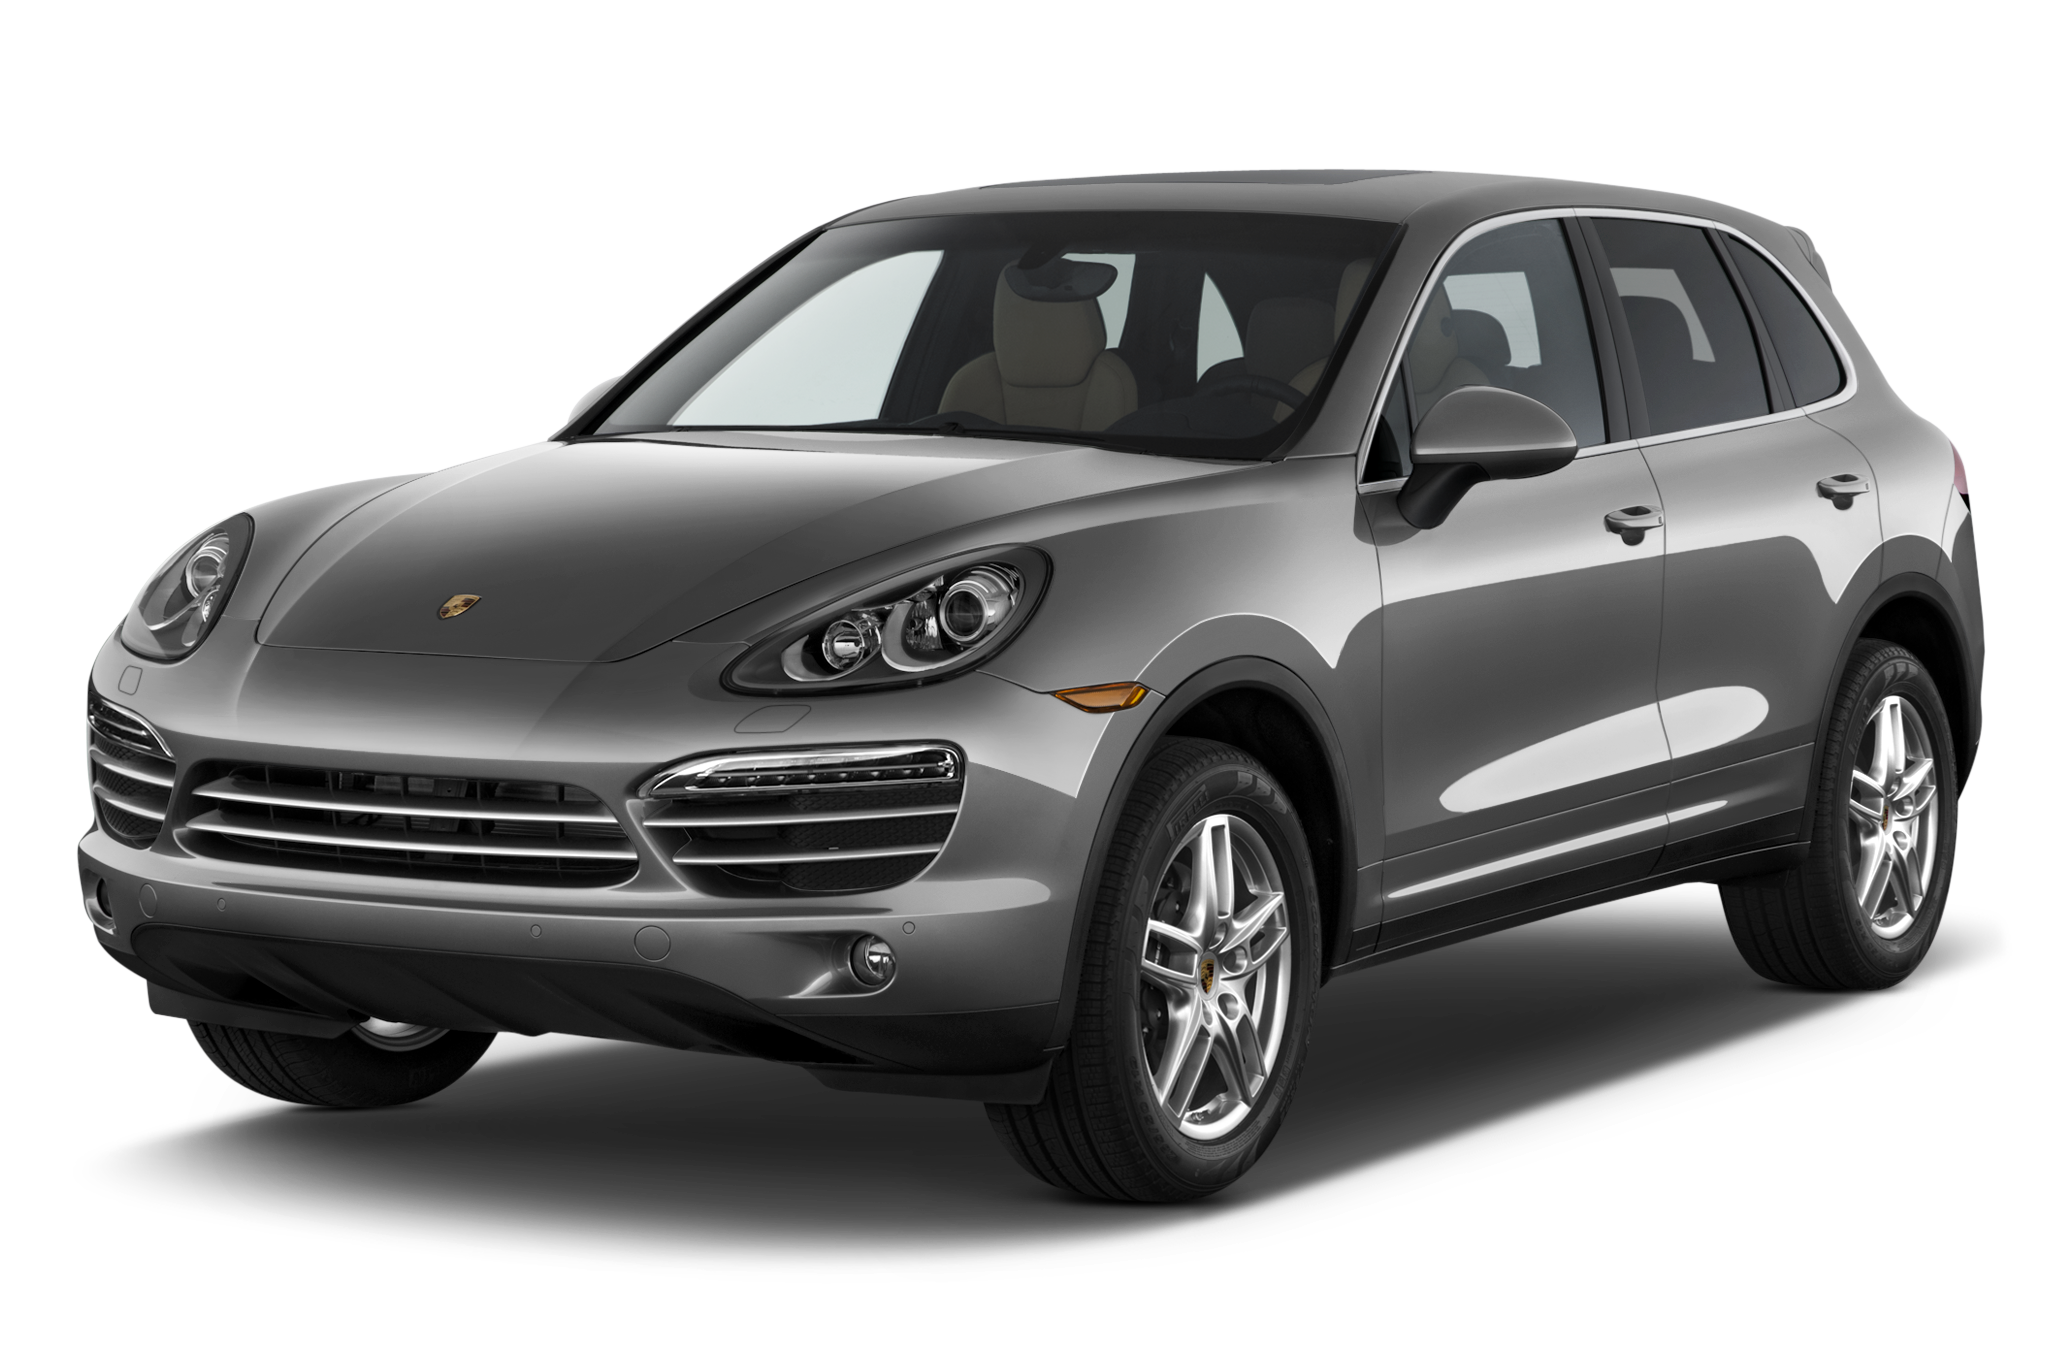 Rent a Porche Cayenne car in Crete